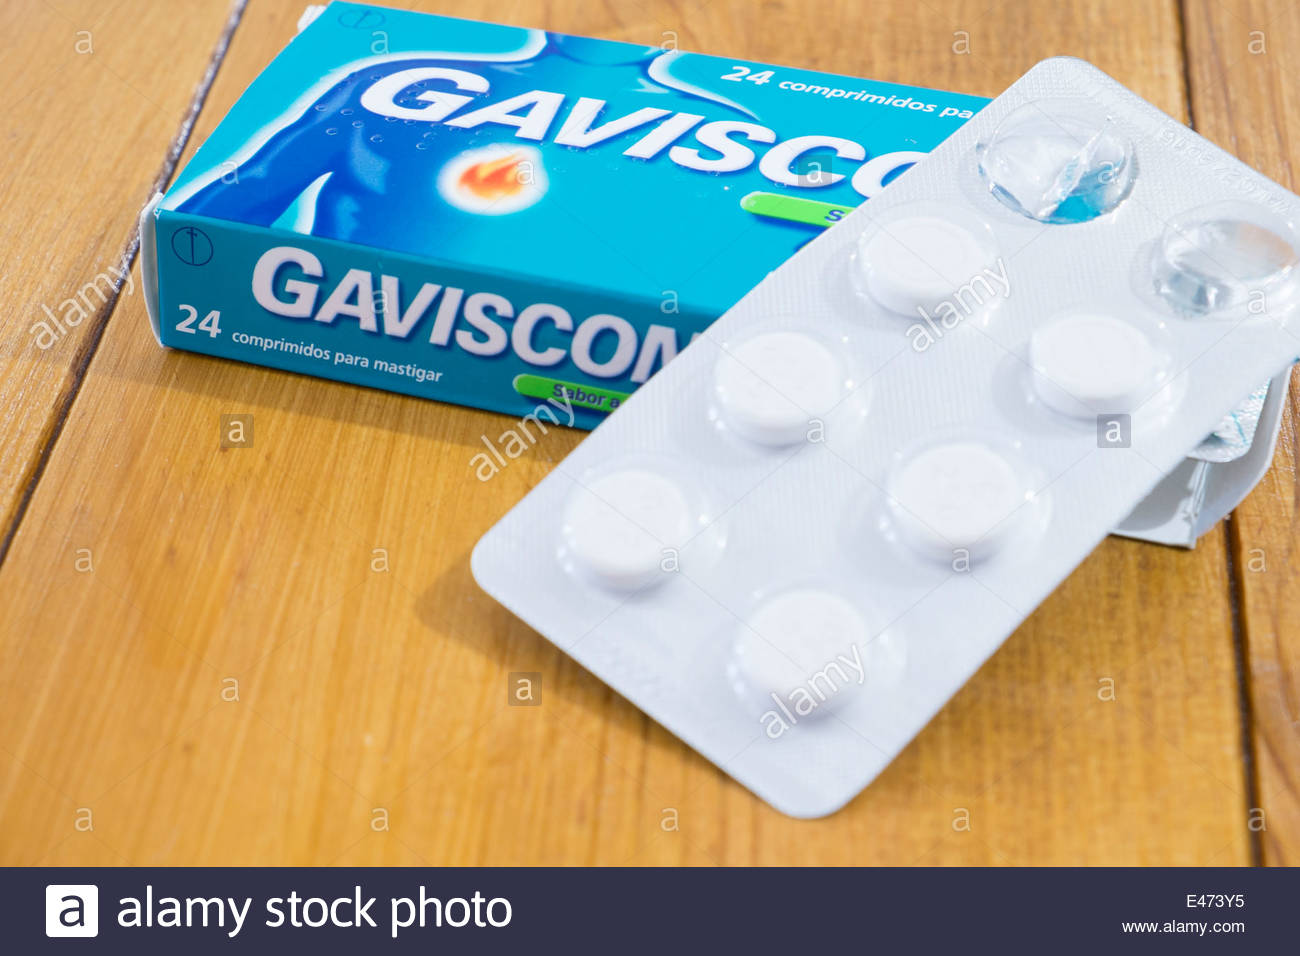 box of Gaviscon antacid relief tablets as sold in Portugal - Stock Image